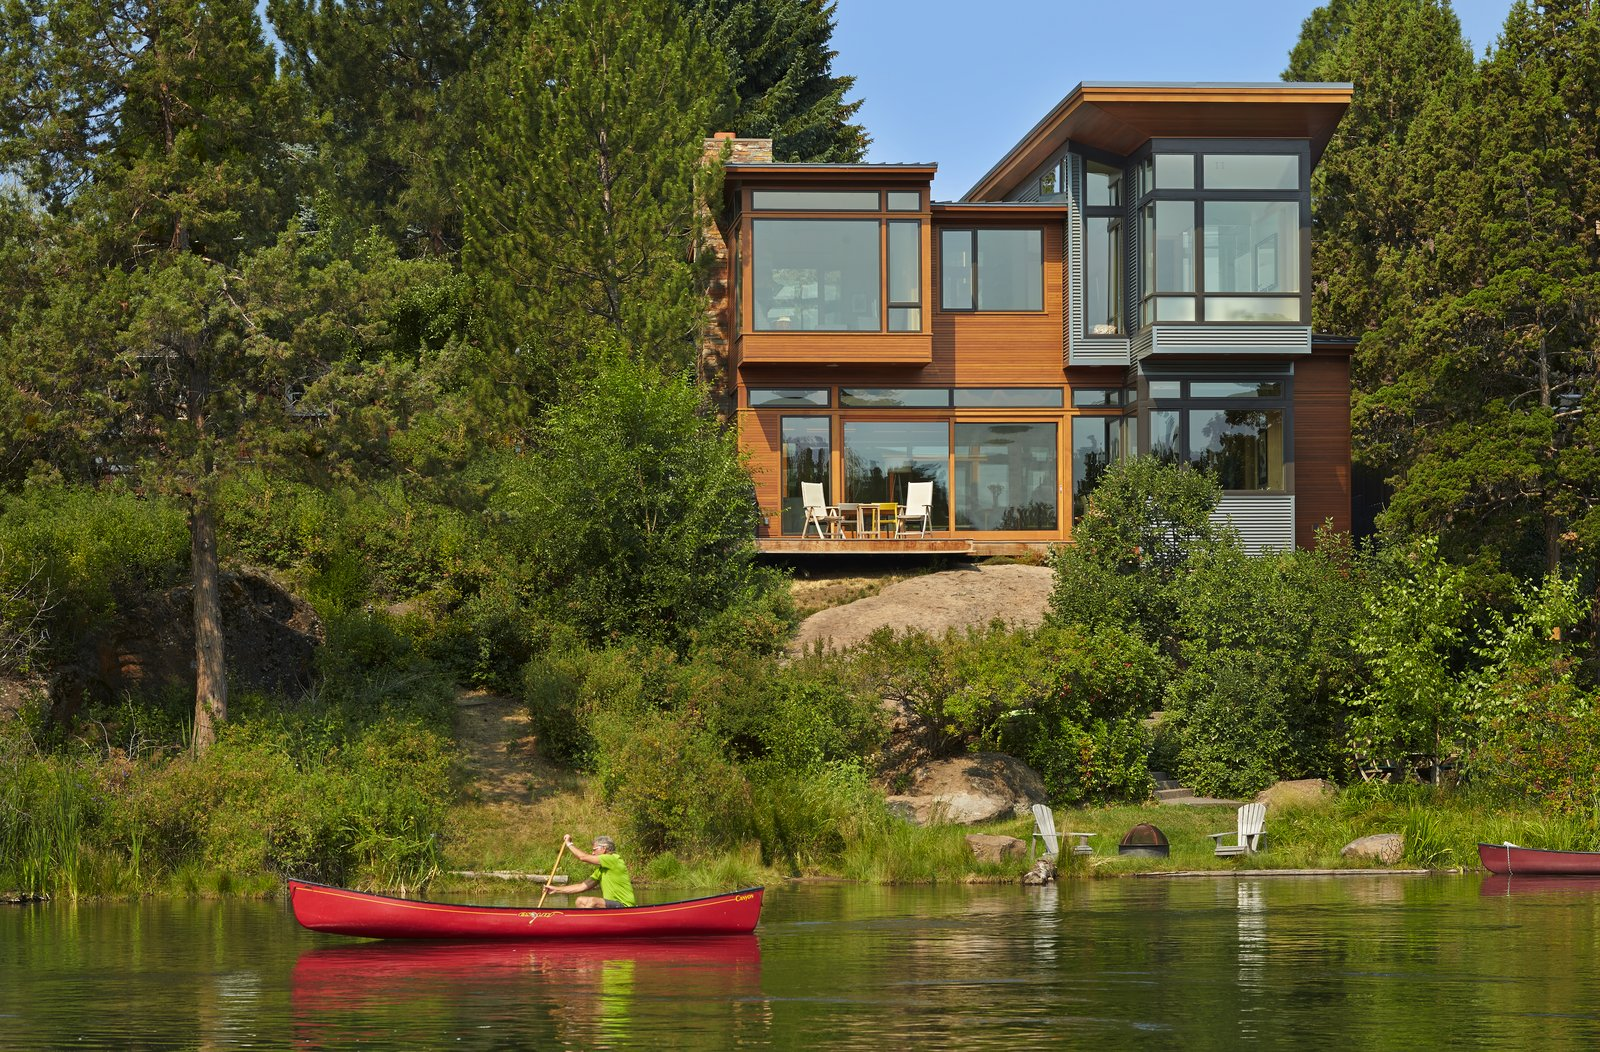 Exterior view of house from Deschutes River